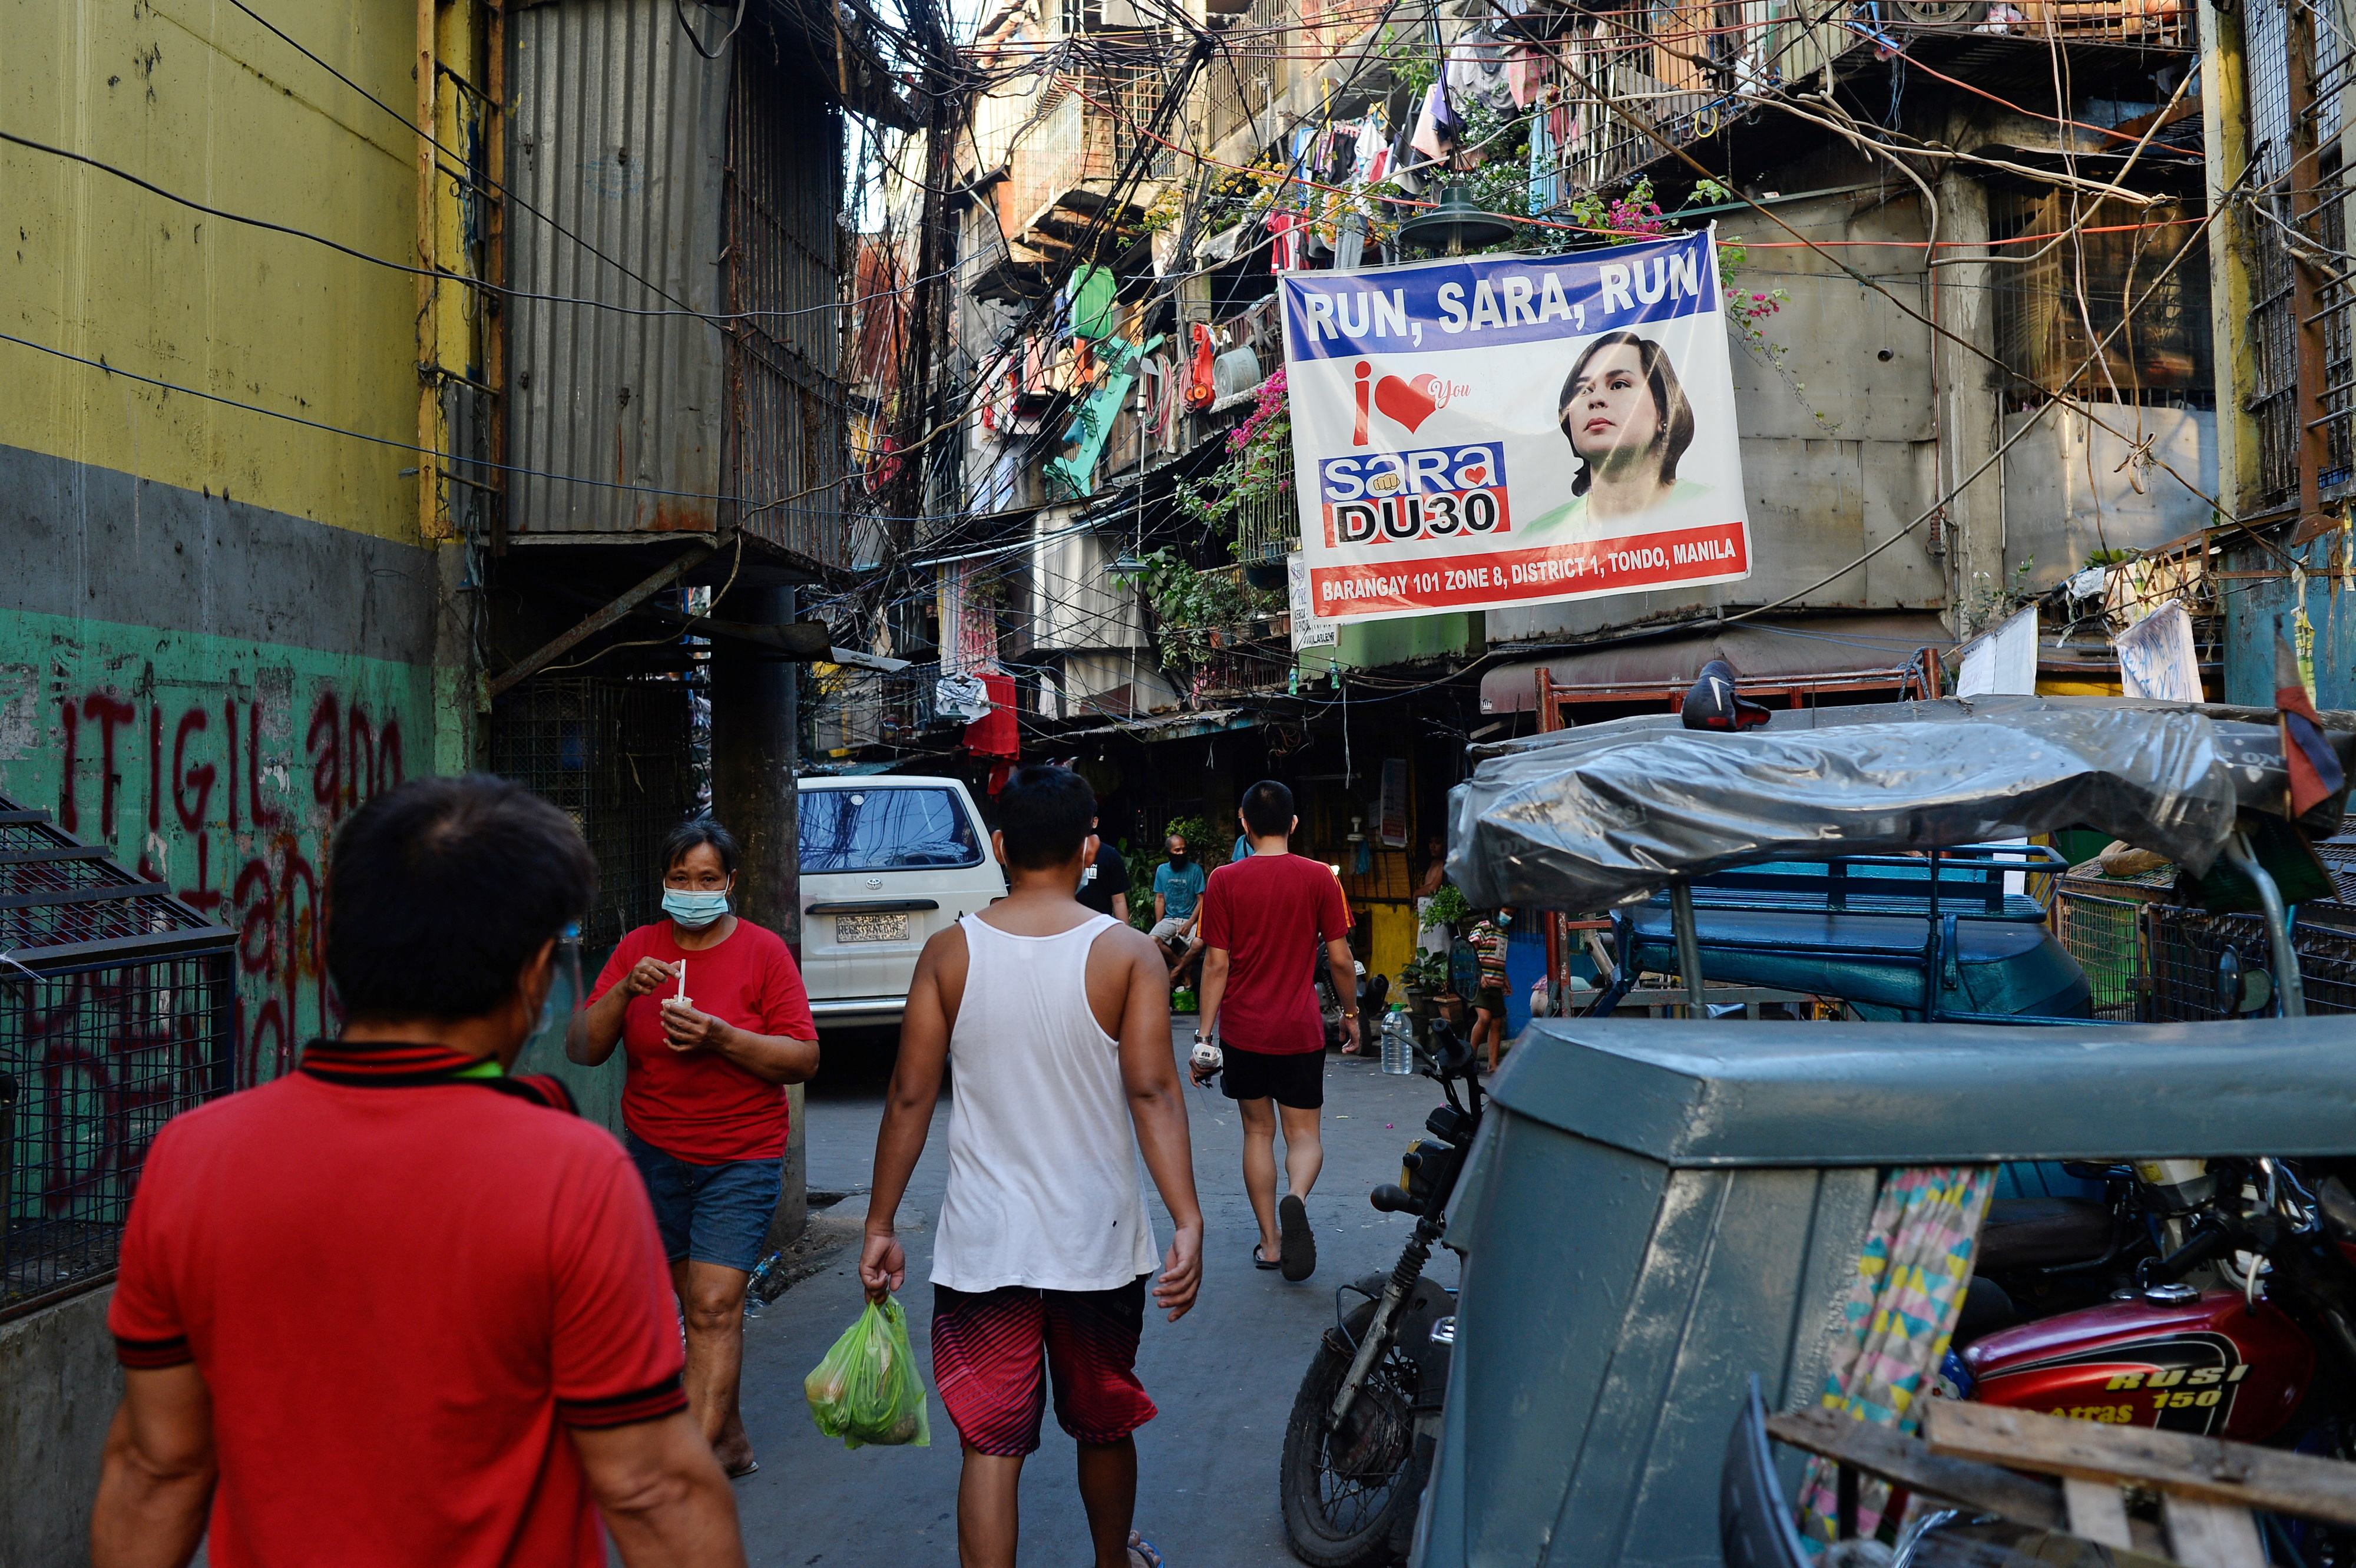 A banner showing support for Davao City Mayor Sara Duterte to run for president is seen in a community in Manila, Philippines, April 9, 2021. Picture taken April 9, 2021. REUTERS/Lisa Marie David